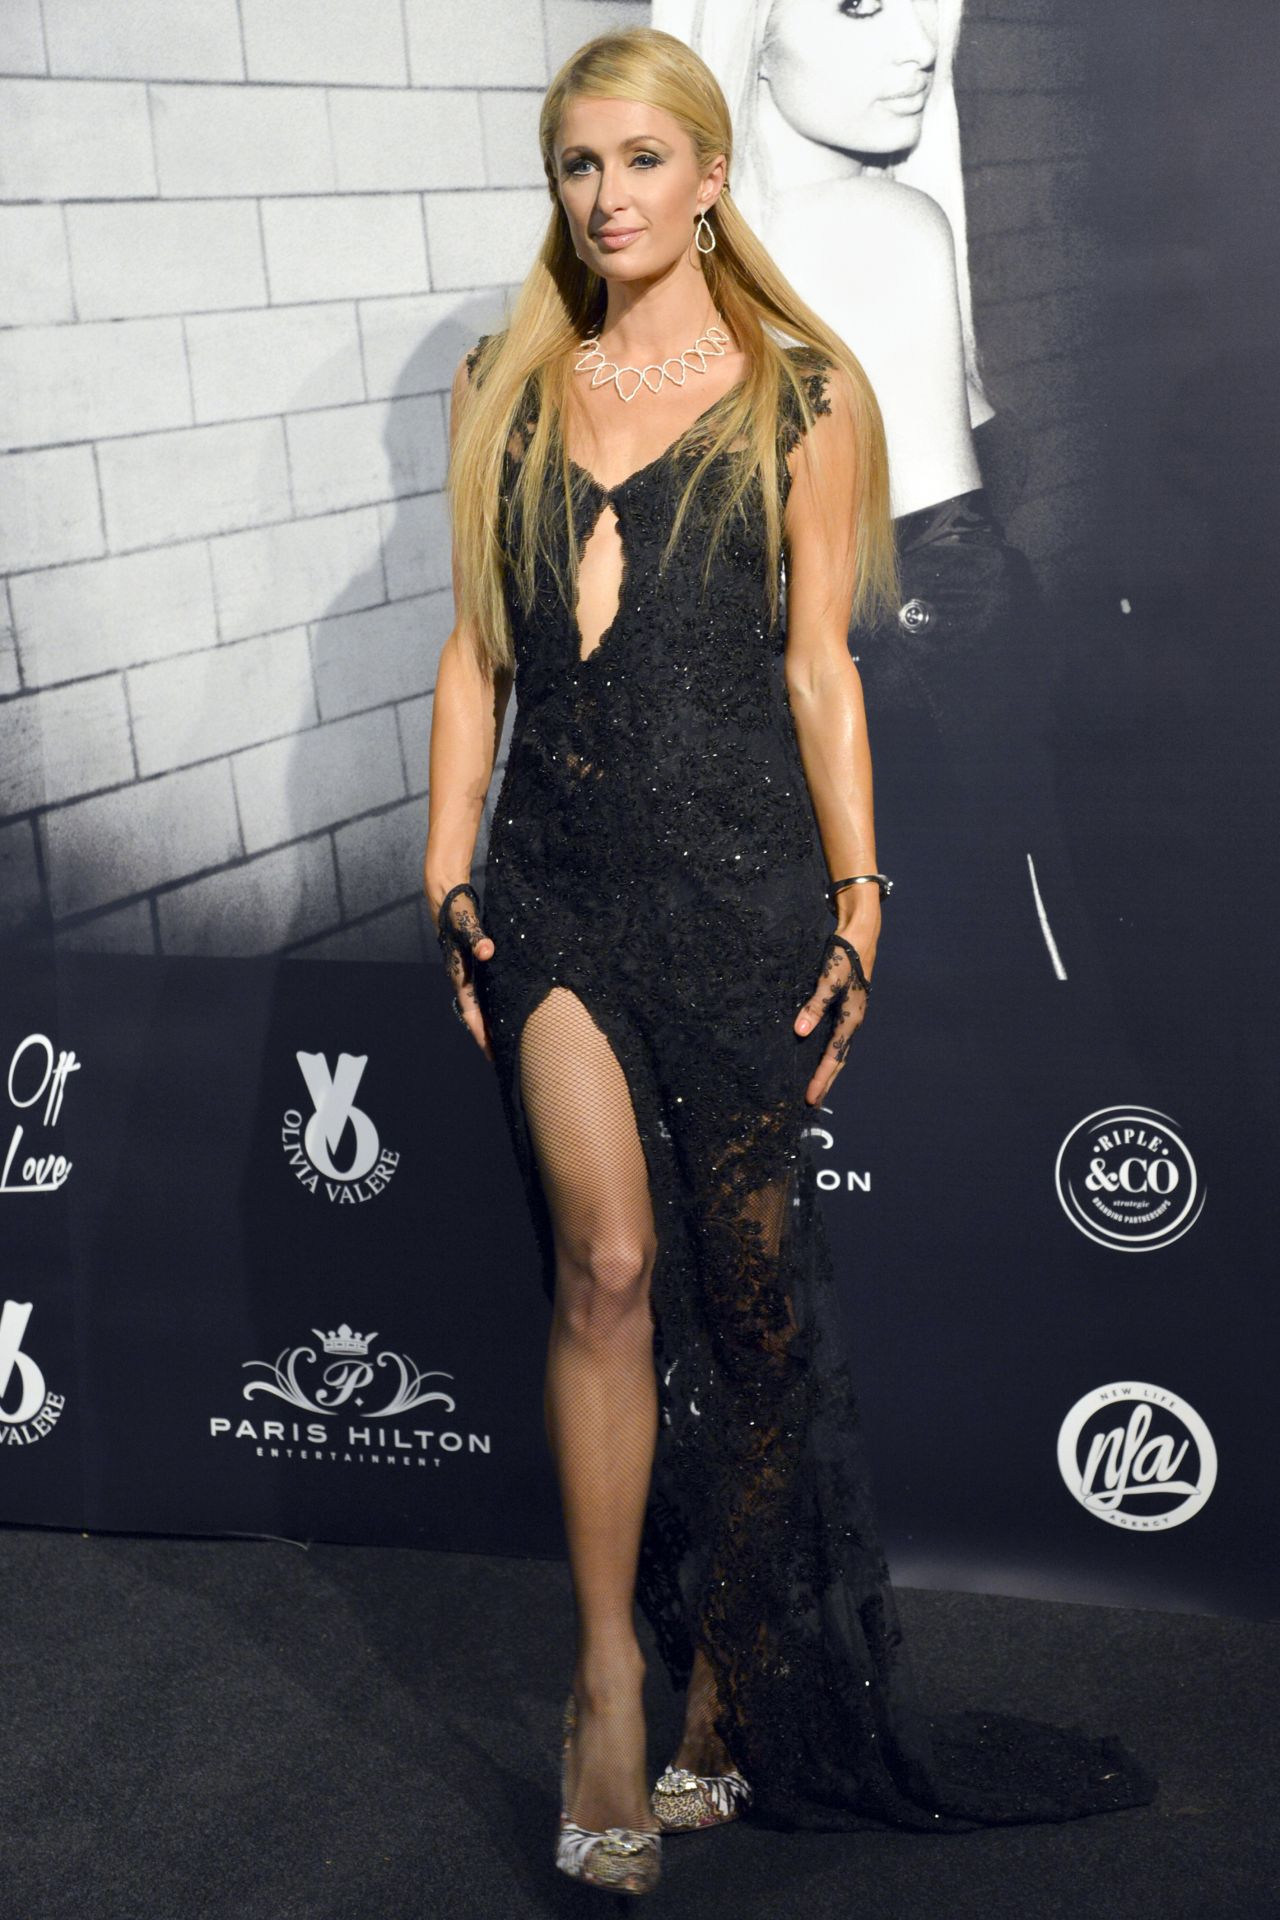 Paris Hilton At 'Olivia Valere' Disco in Marbella, August 2015 Paris Hilton